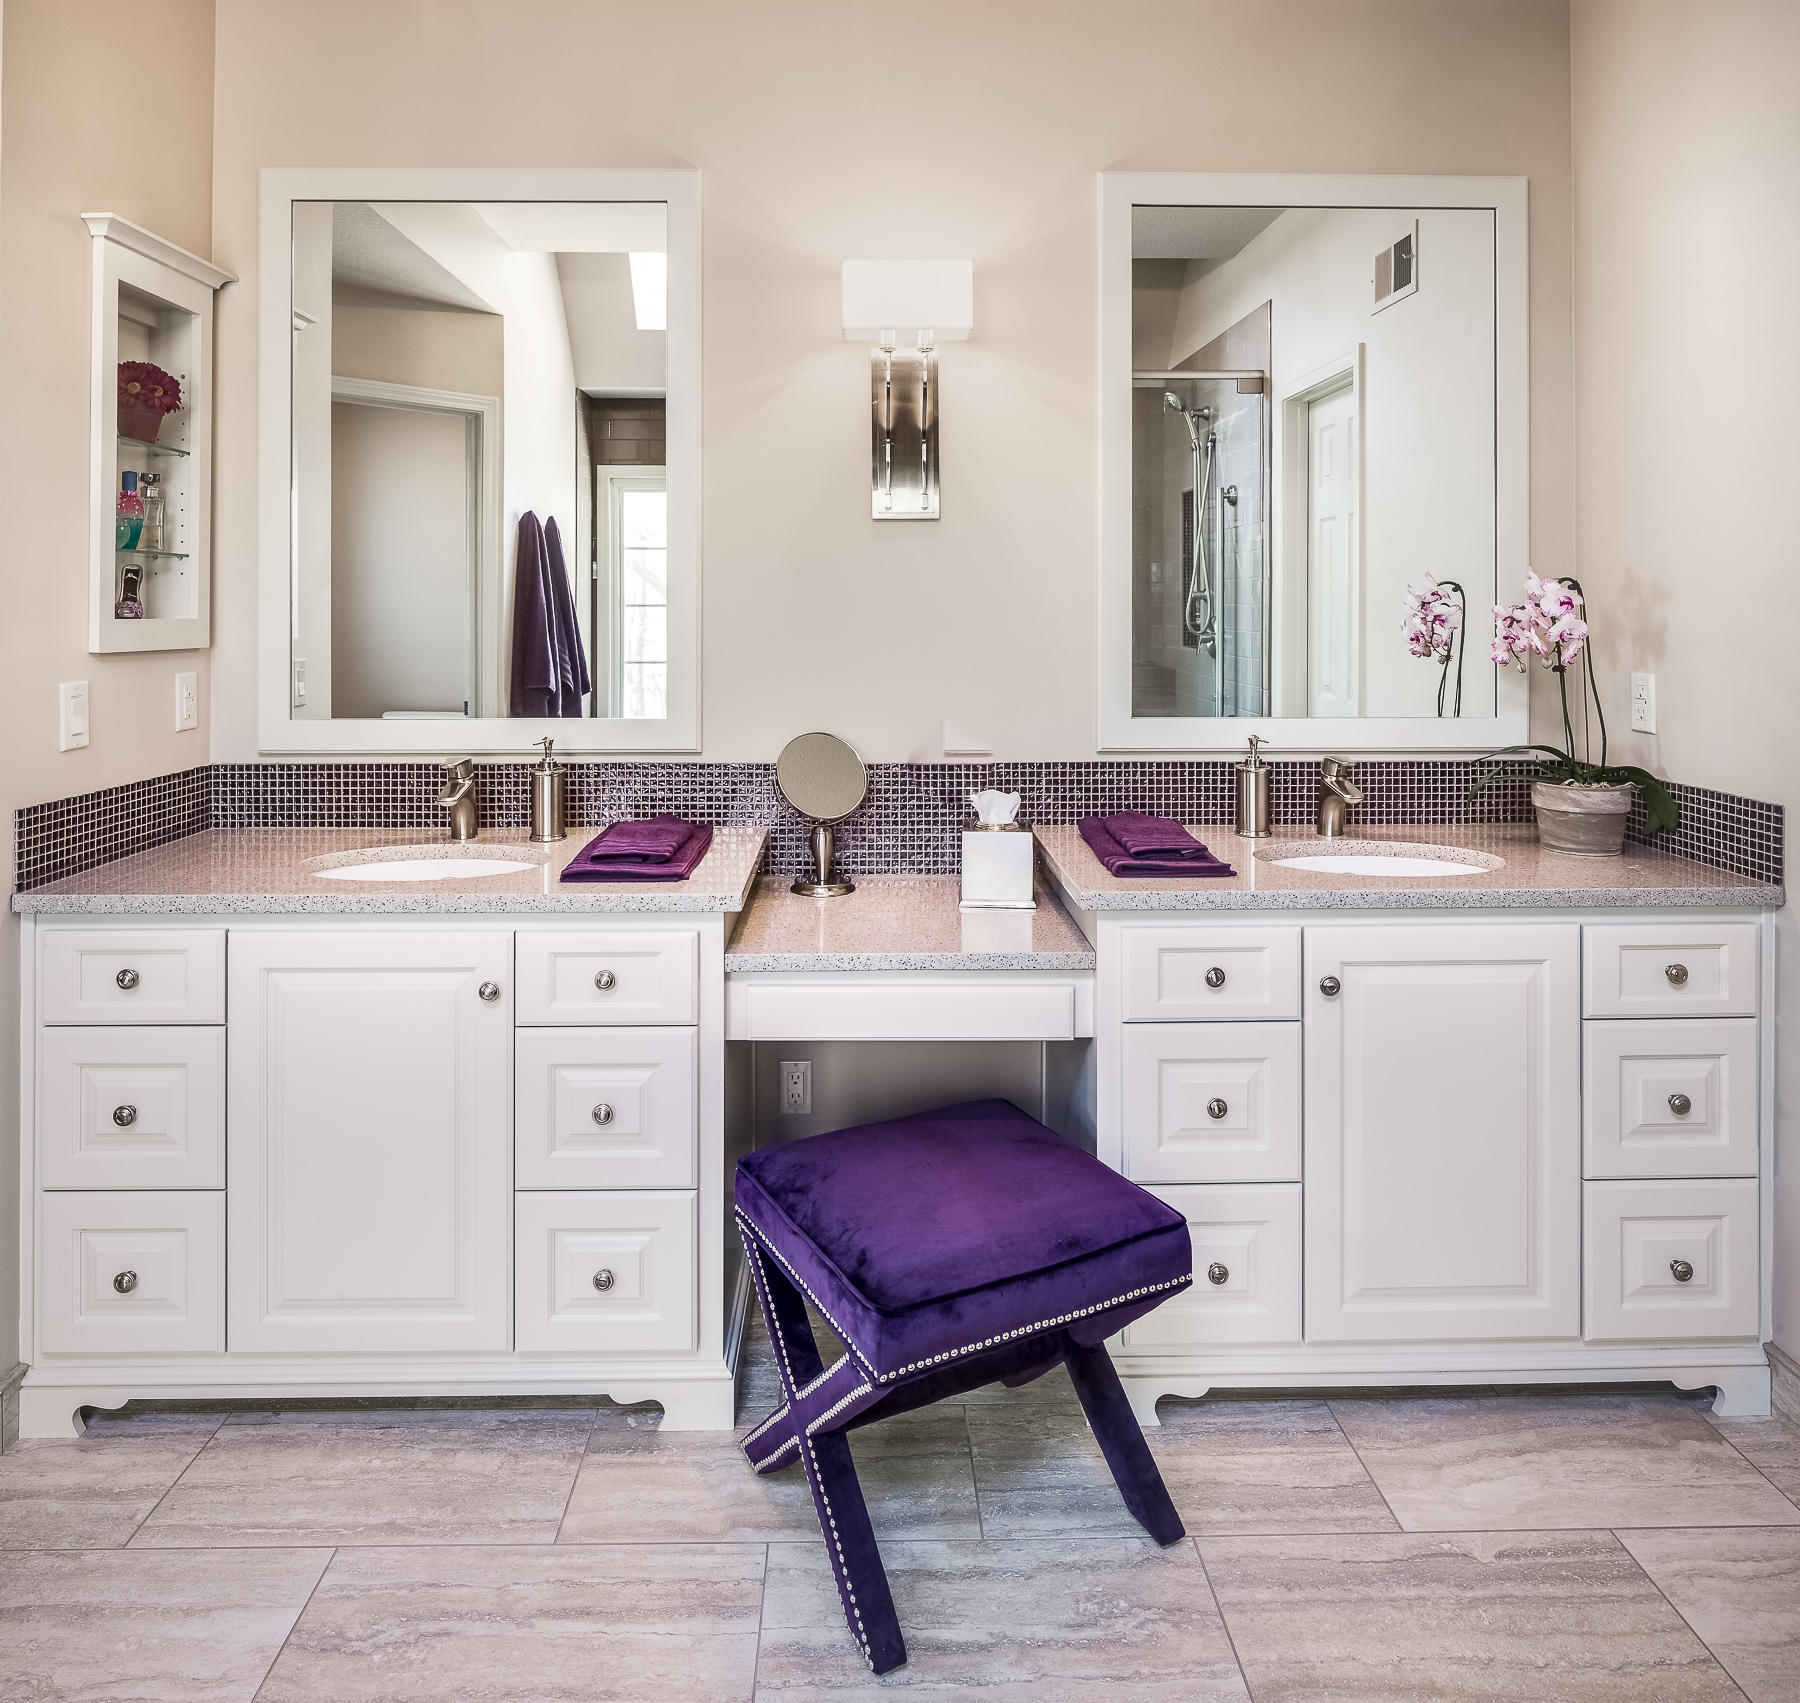 Arlene Ladegaard Bathroom Remodel Kansas City Interior Designer